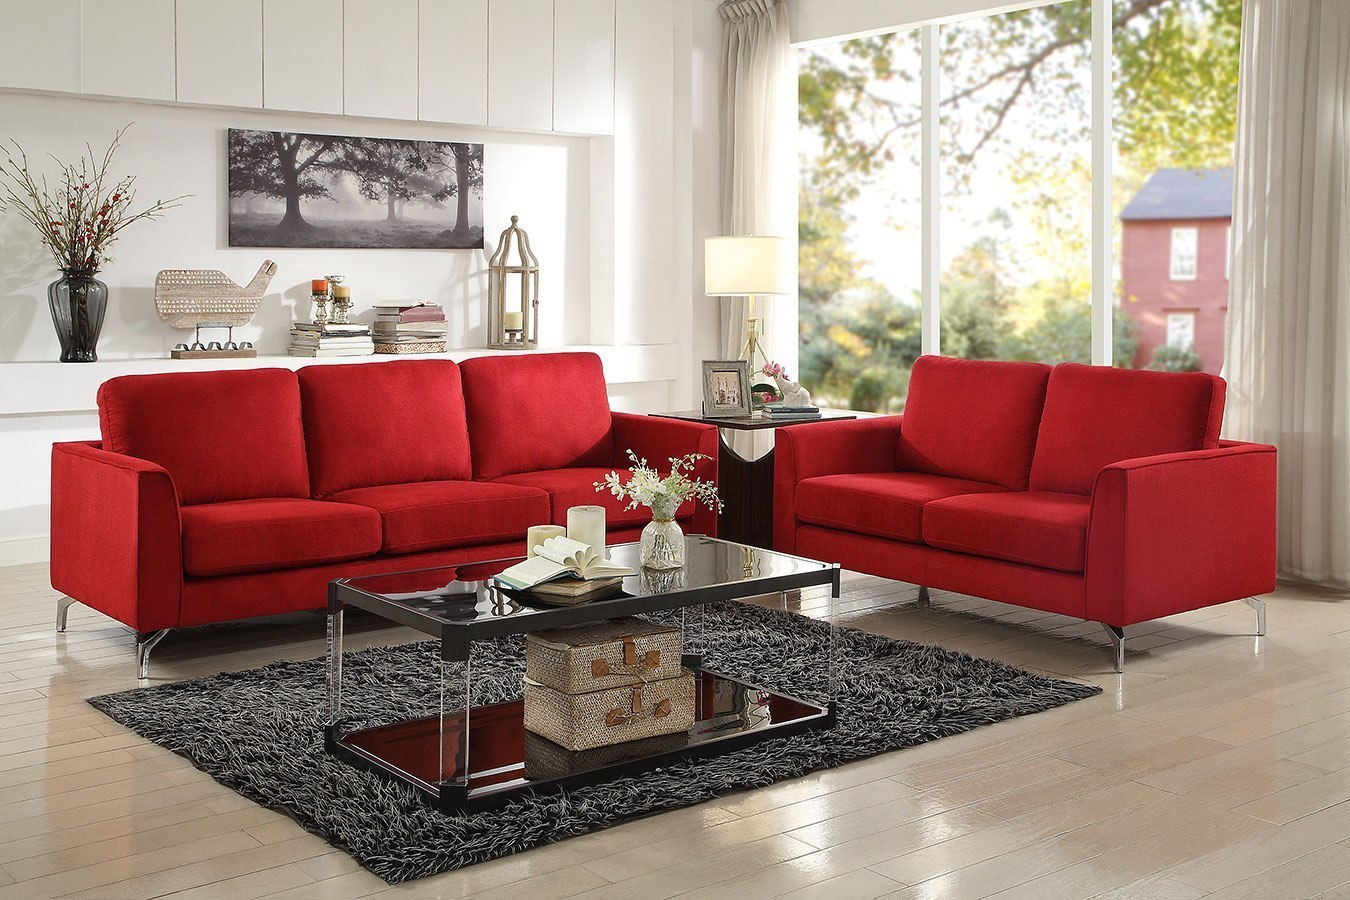 Canaan Living Room Set (Red) By Homelegance